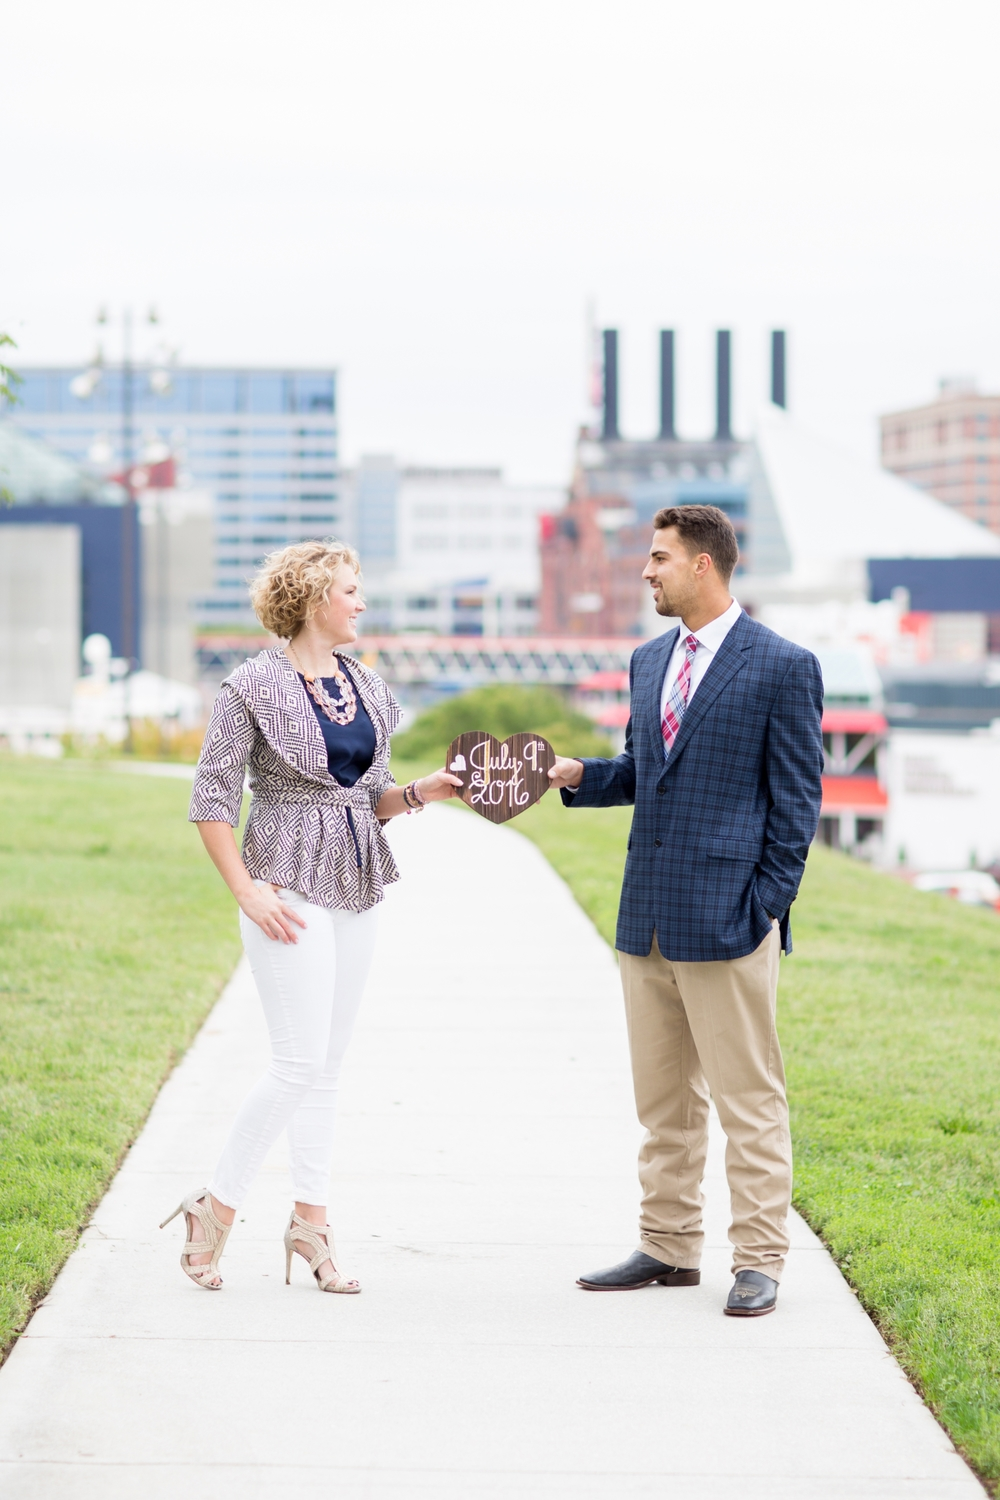 Hayley & Crockett Engagement-85_anna grace photography maryland engagement photographer baltimore ravens.jpg